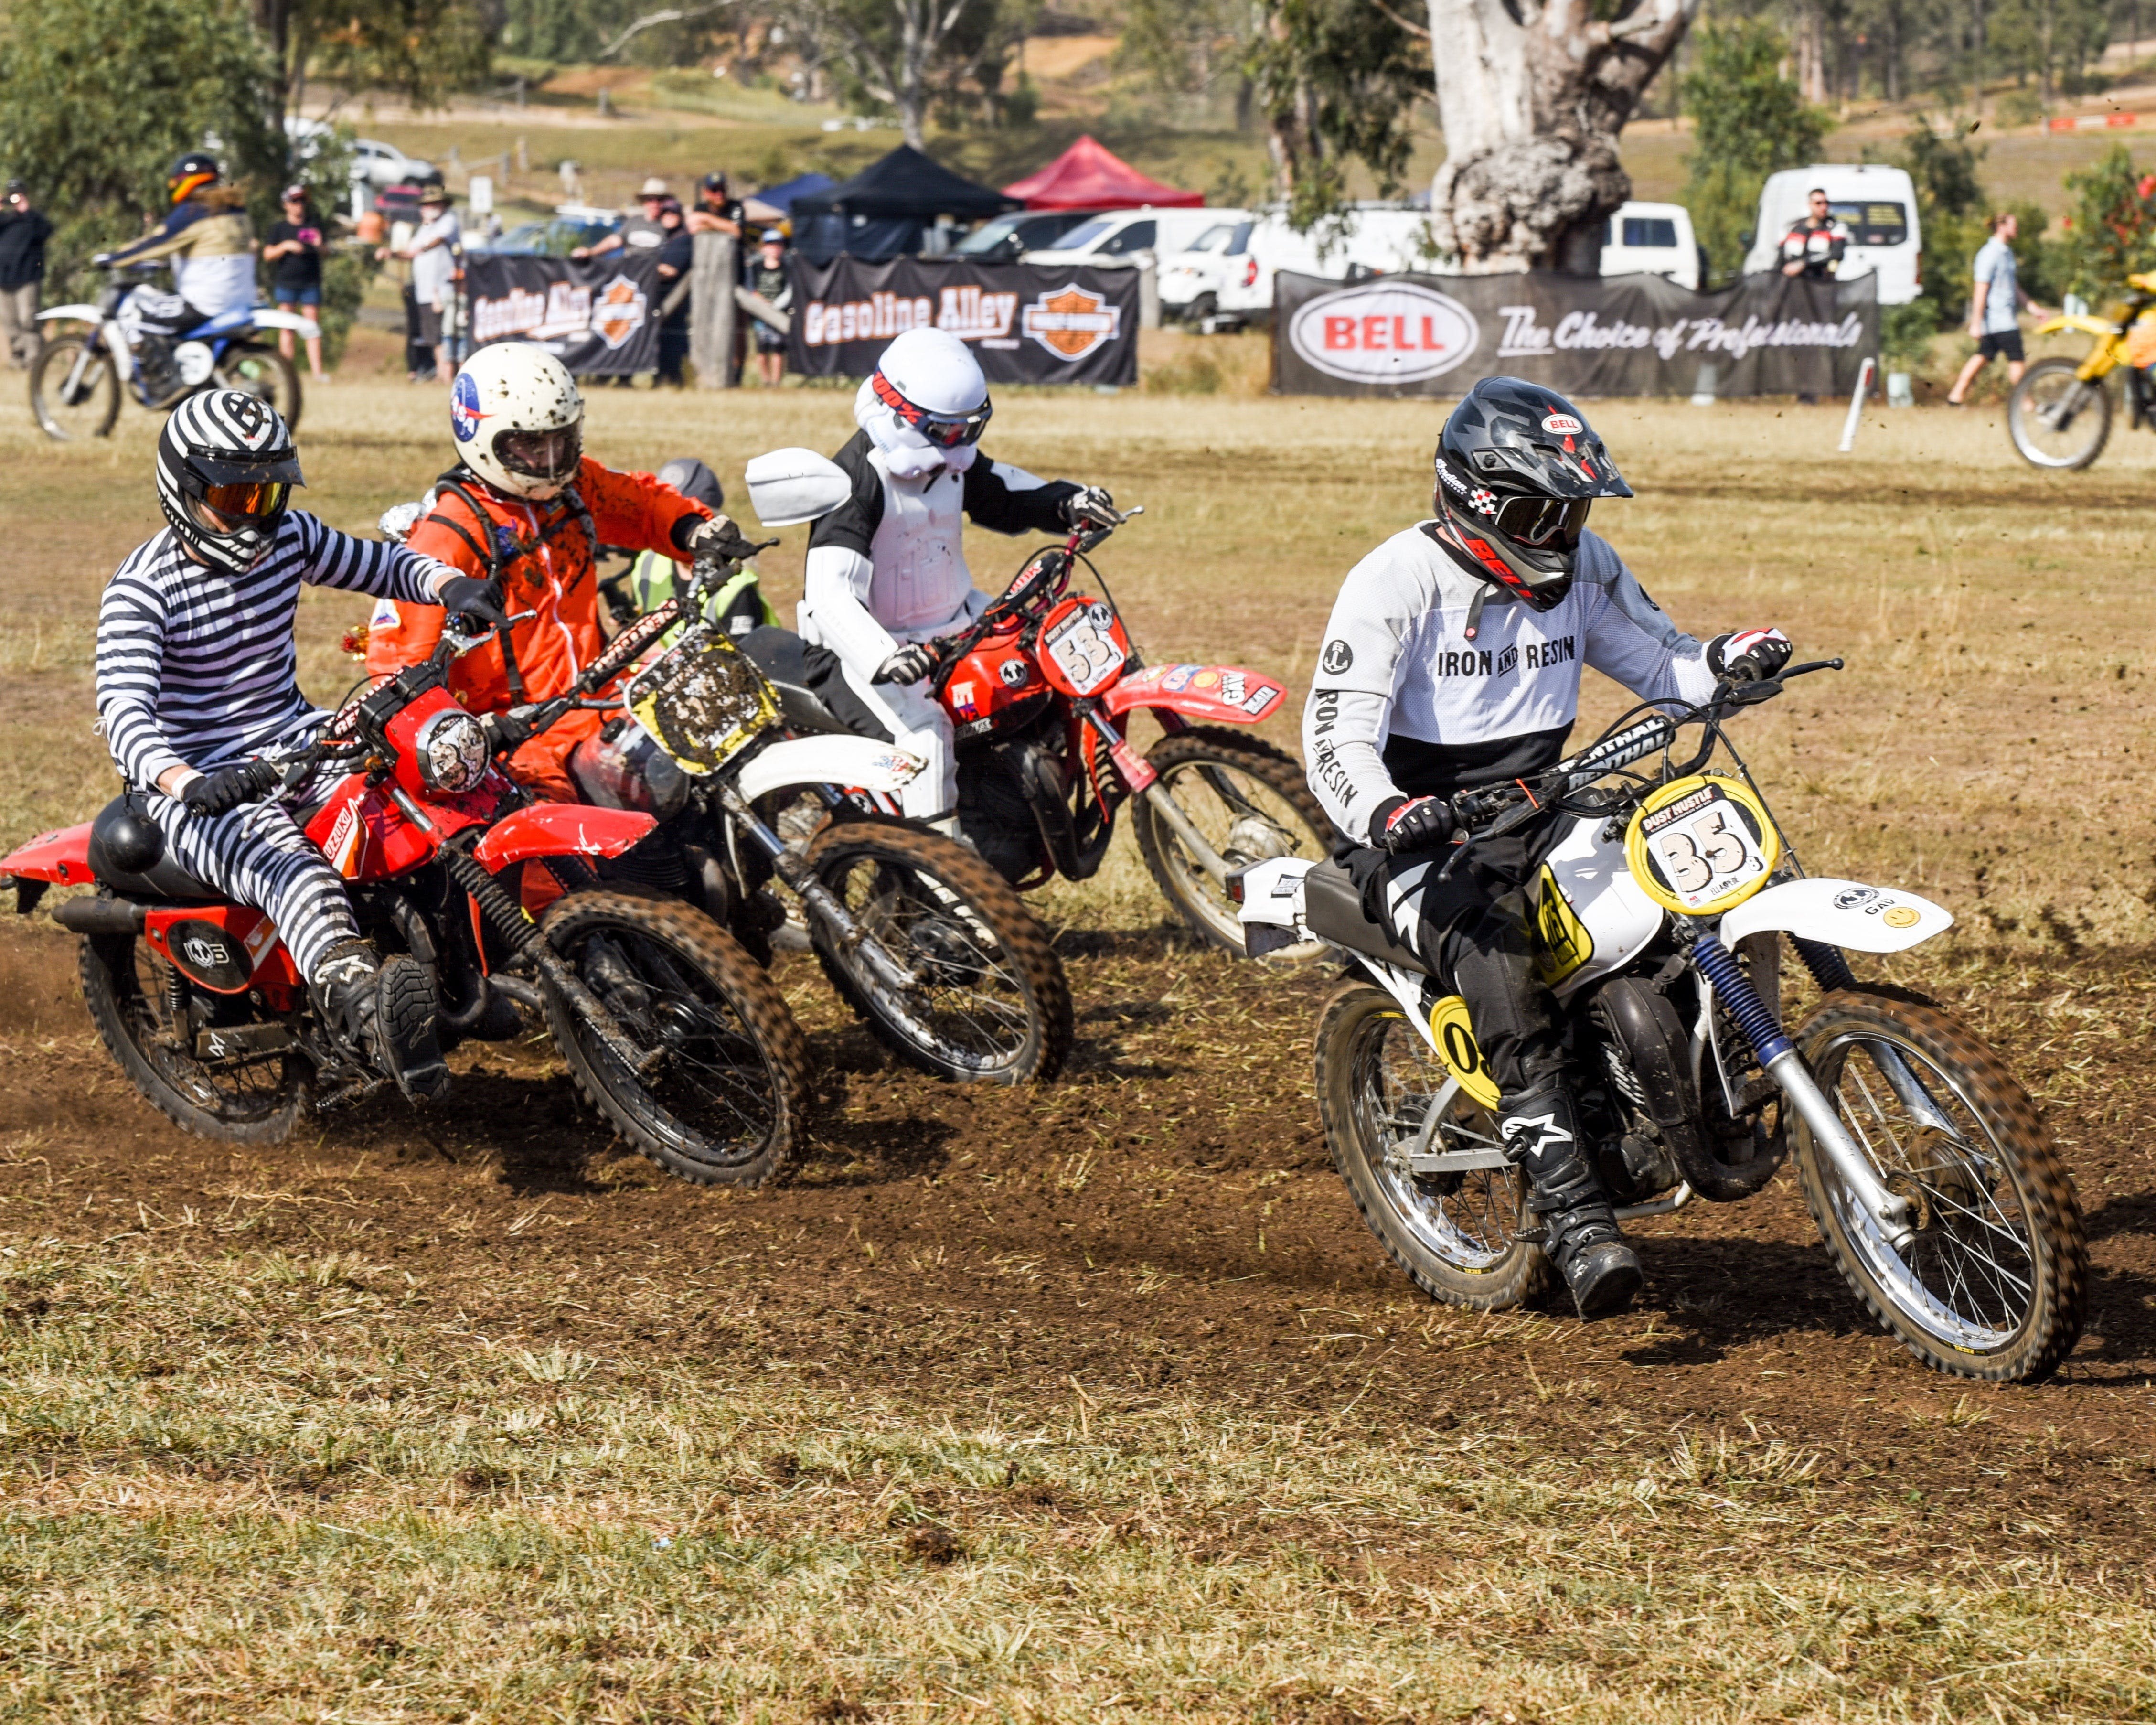 Dust Hustle Queensland Moto Park - Accommodation Search